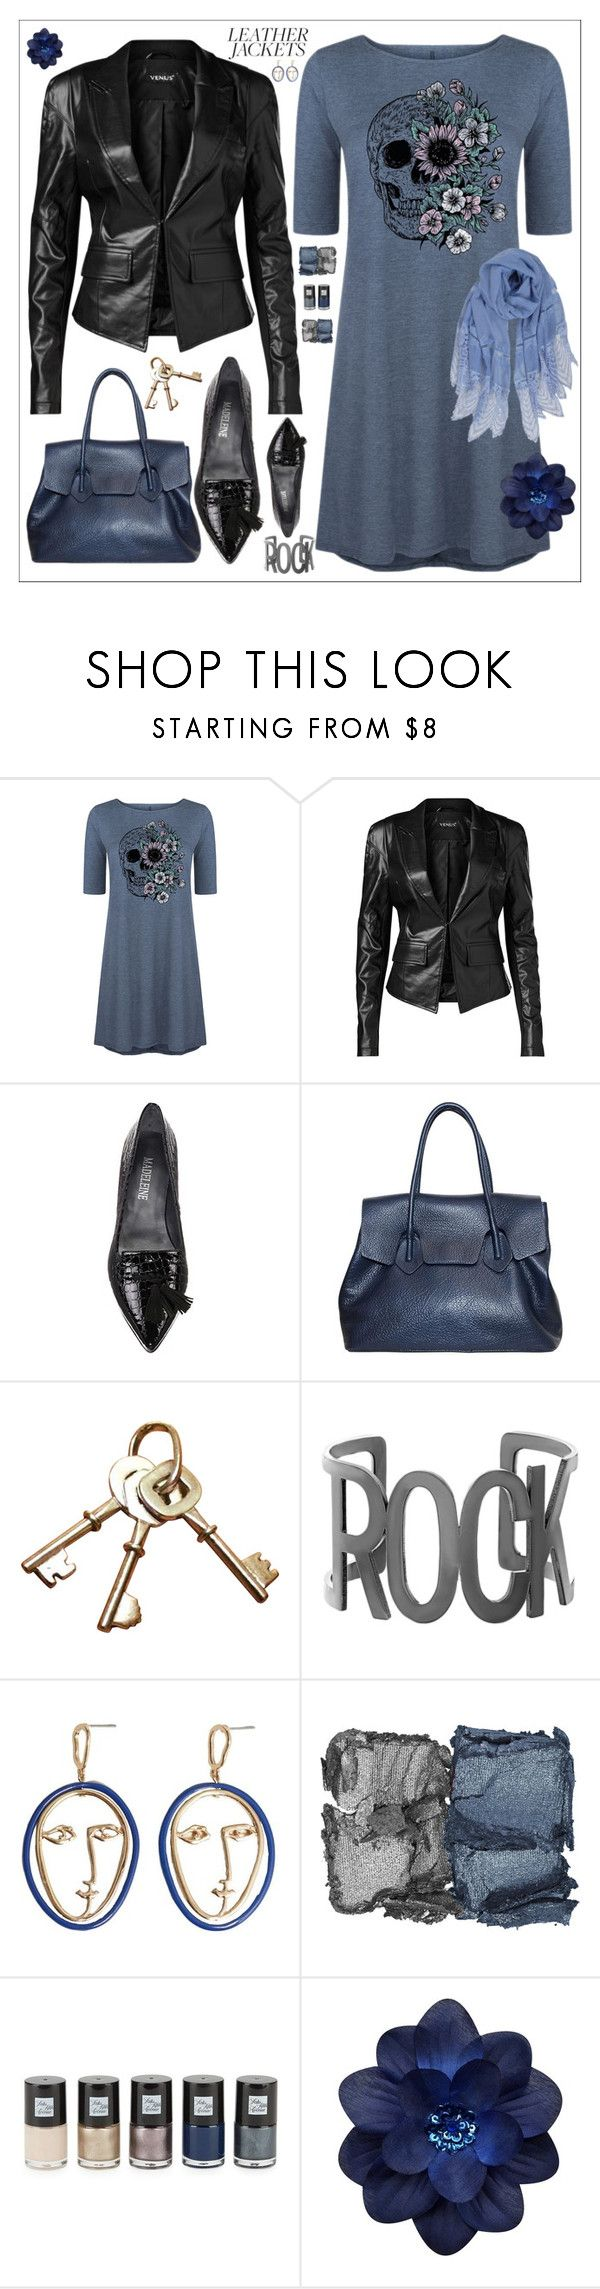 """""""Leather jacket"""" by amisha73 ❤ liked on Polyvore featuring LC Trendz, Venus, Steve Madden, MANGO, NARS Cosmetics, Saks Fifth Avenue and Humble Chic"""